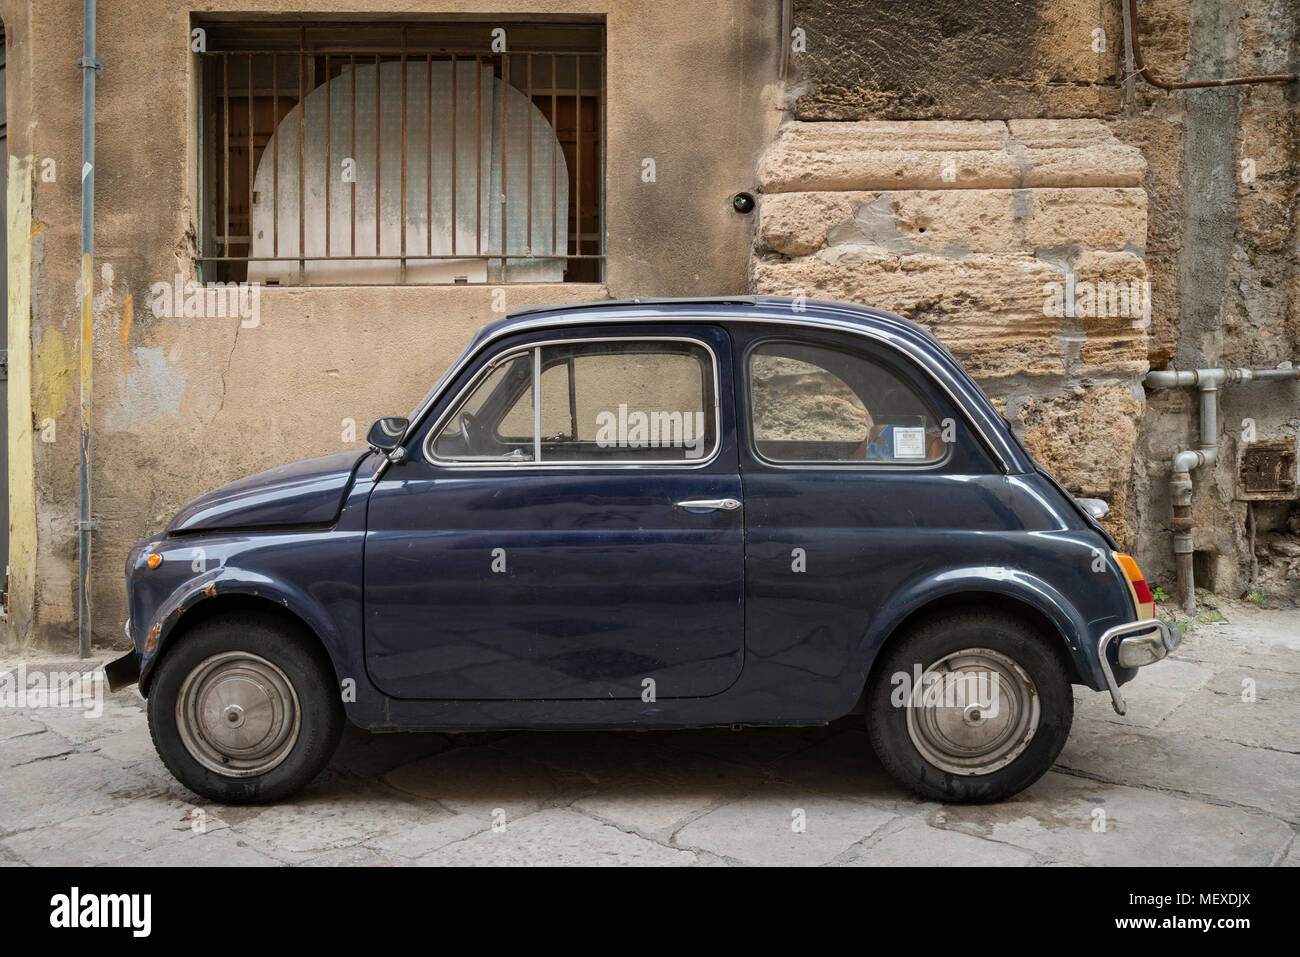 download city view back car photo image white stock fiat of small street parked vintage